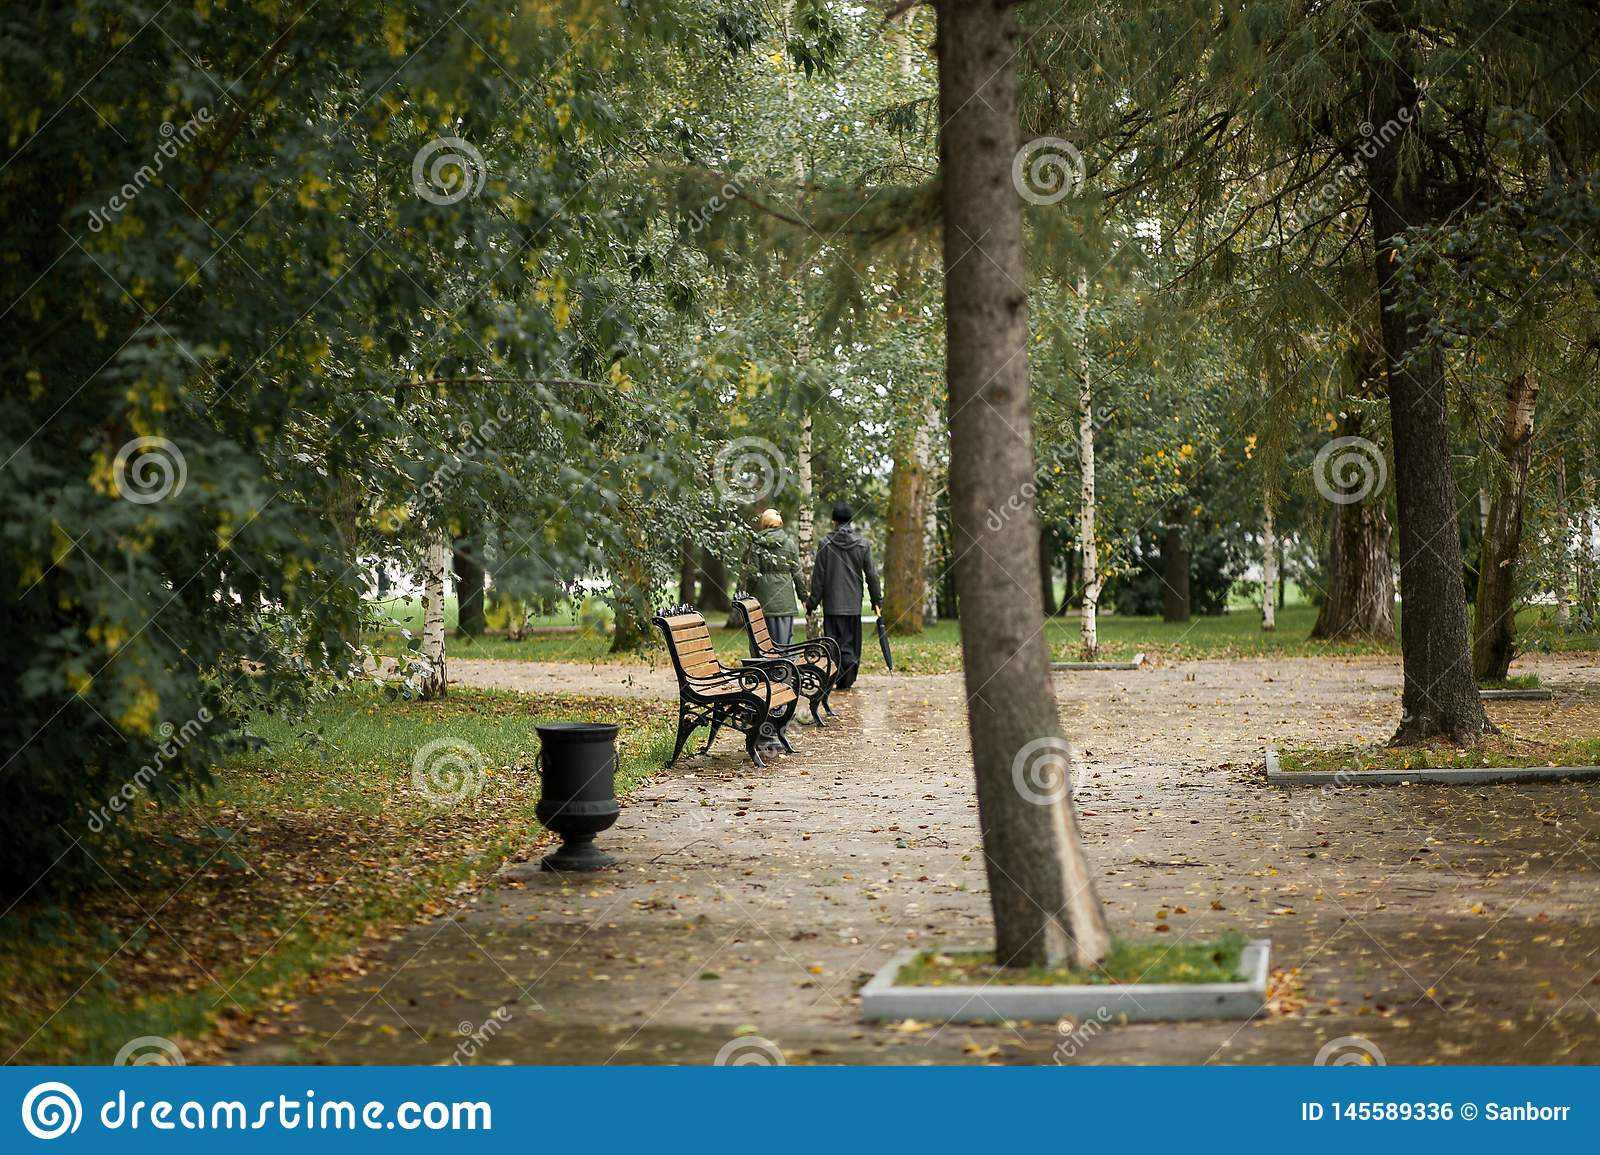 A man and a woman walk in the Park along the path on a cloudy autumn day. Minister of the Church with his wife, holding hands on a